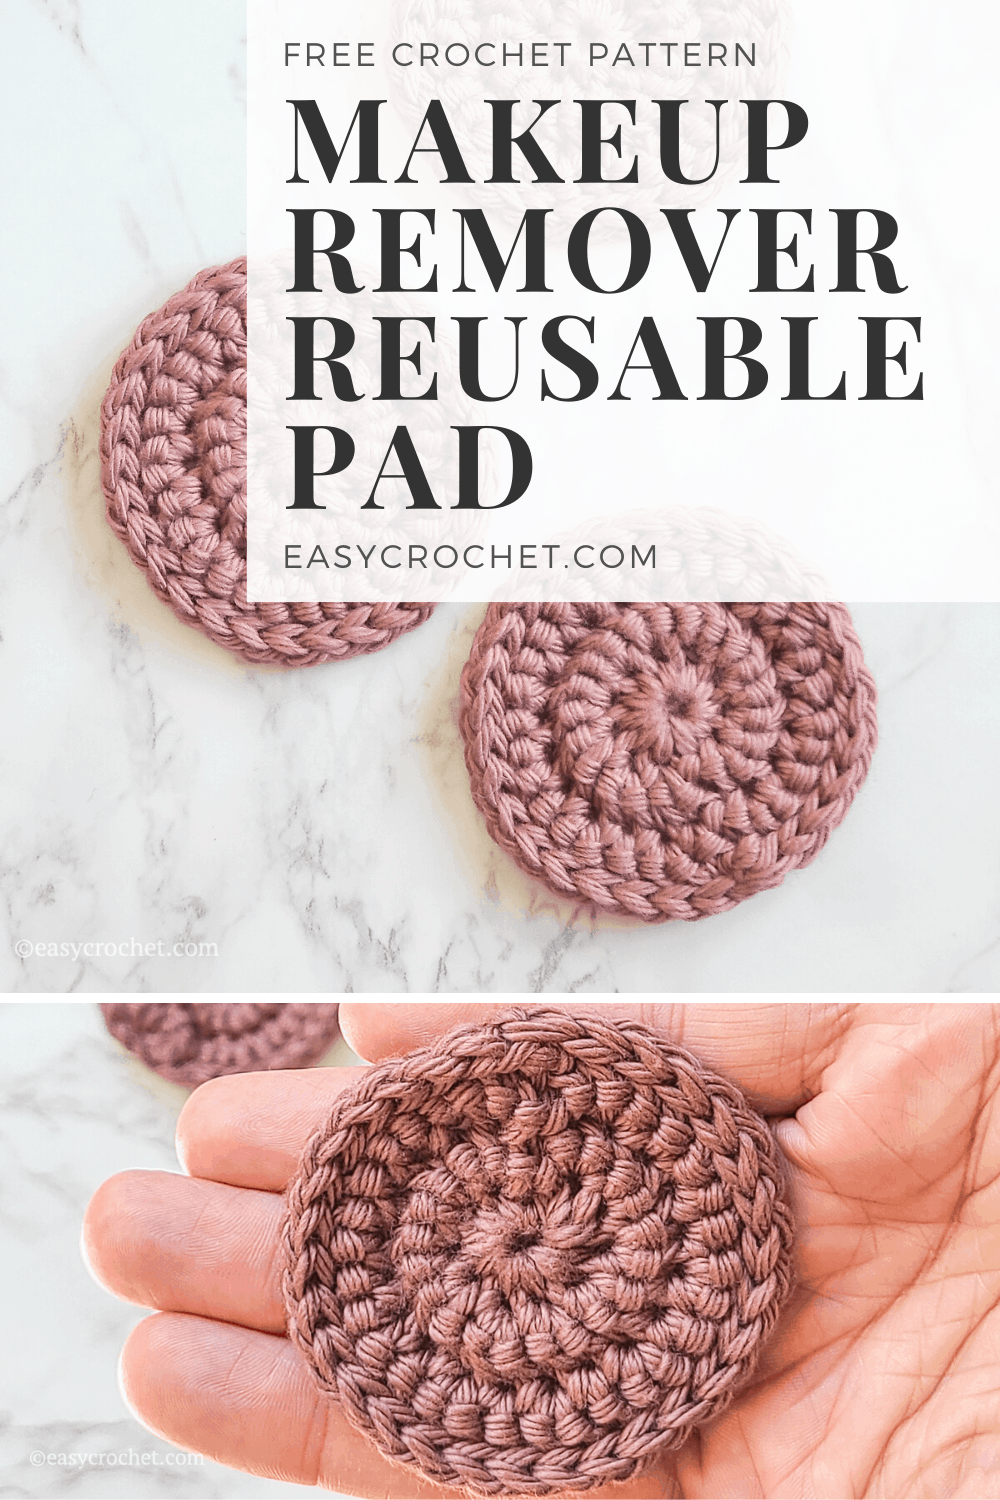 Easy to Crochet Makeup Remover Reusable Pads. Crochet this washable, dryable and great for the environment crochet pattern today! Find it at easycrochet.com via @easycrochetcom